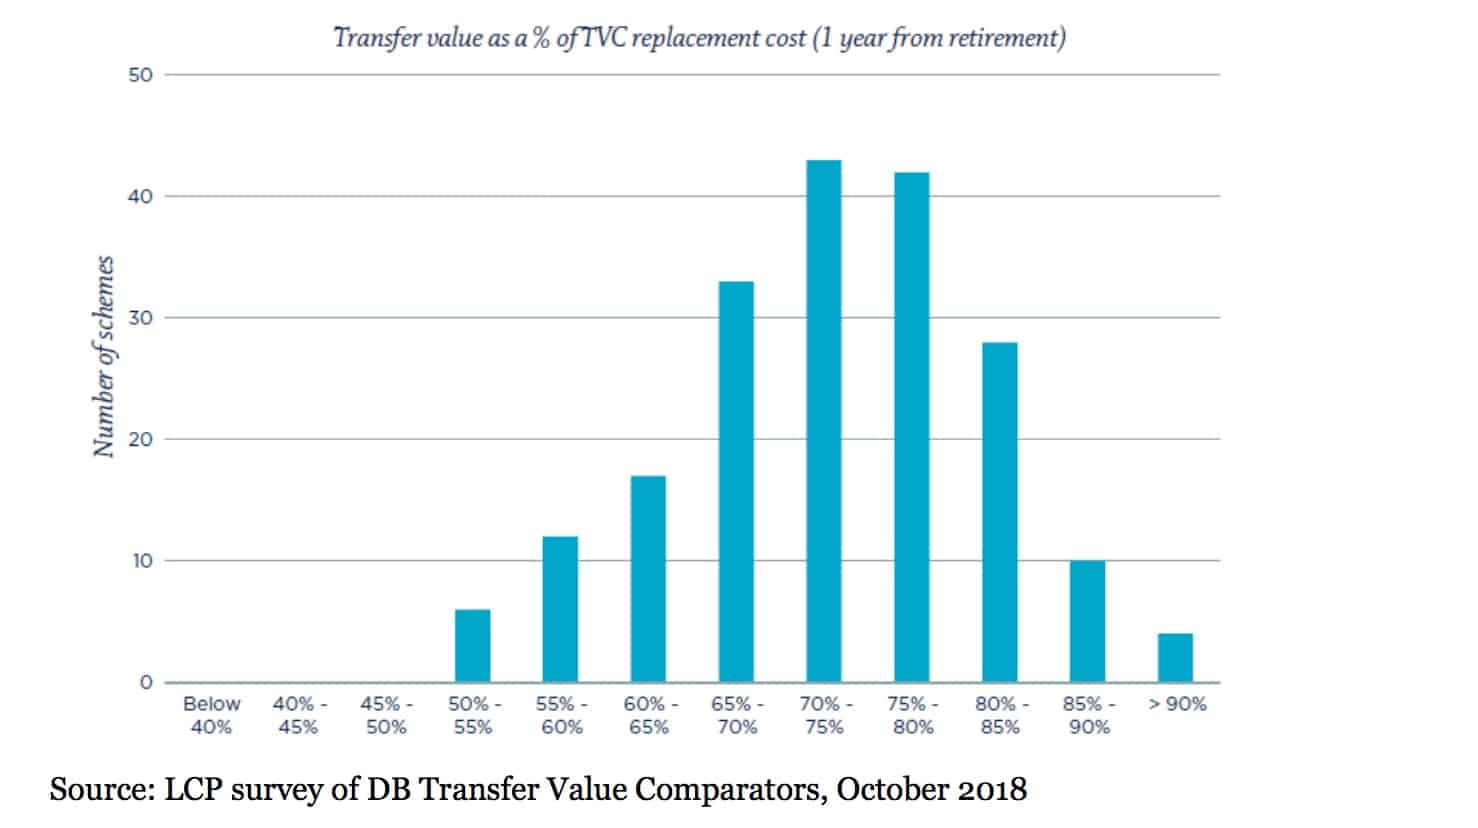 Transfer Value Comparators 1 year from retirement